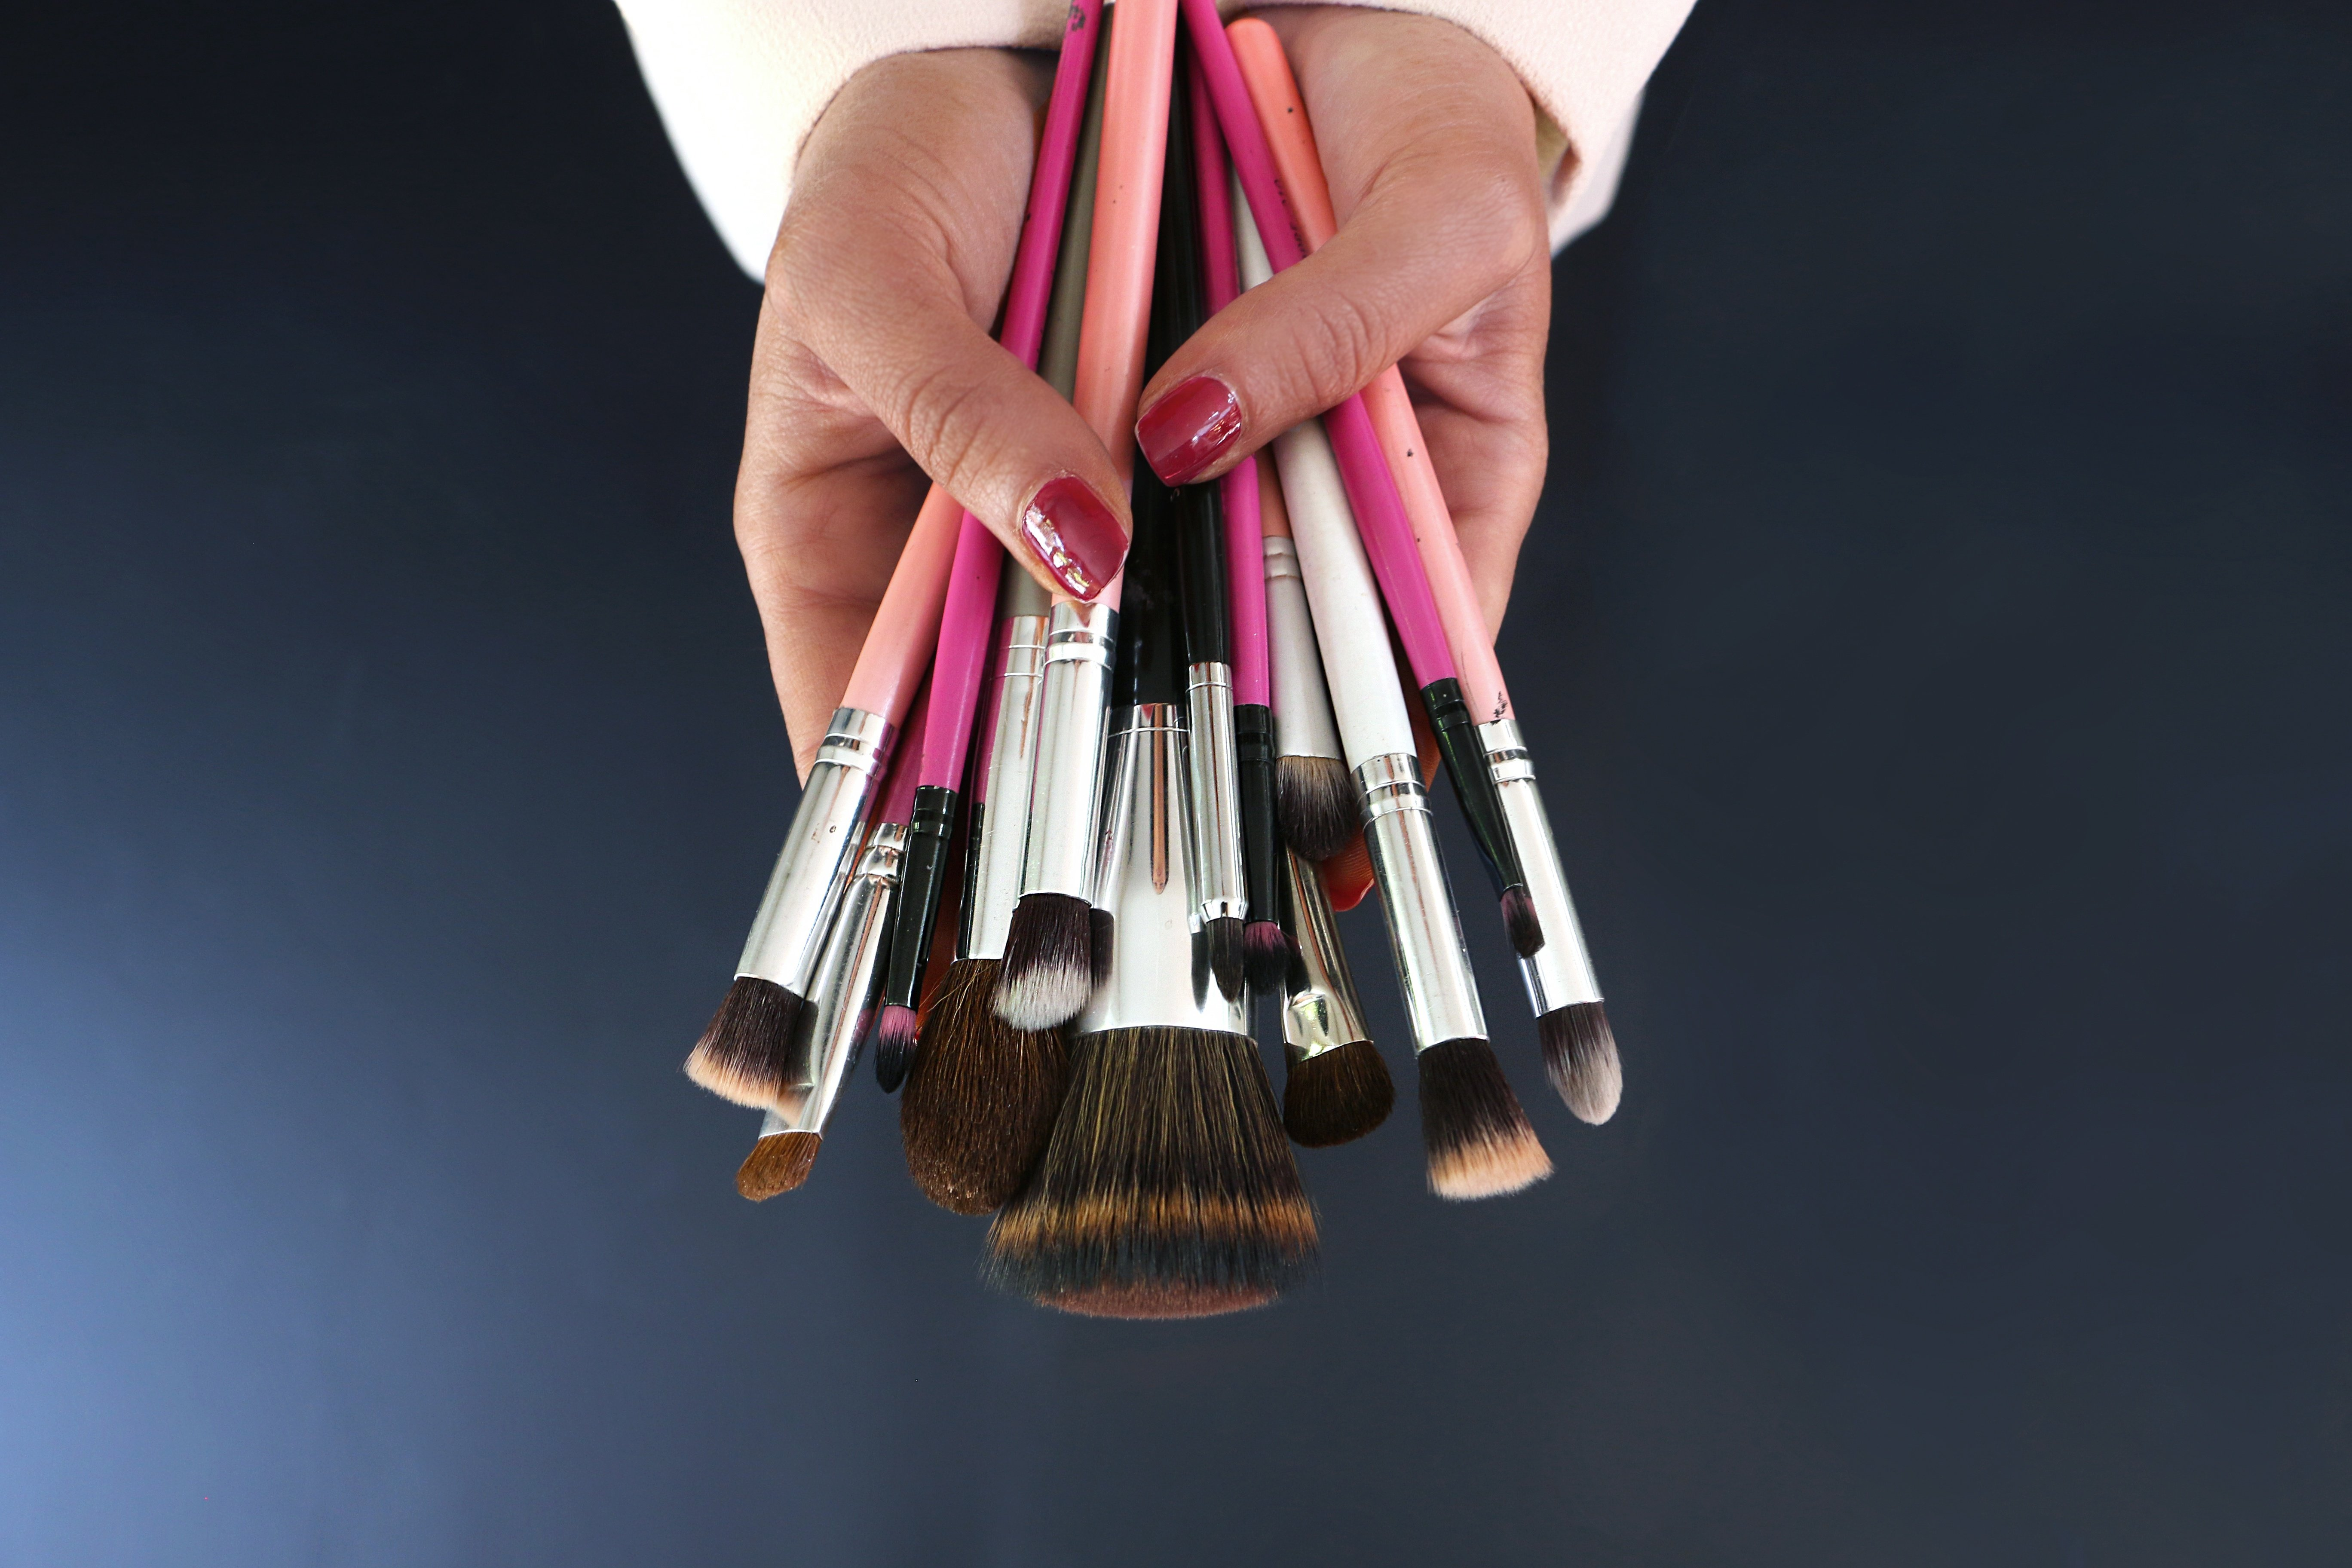 how to clean makeup brushes blog2.jpg